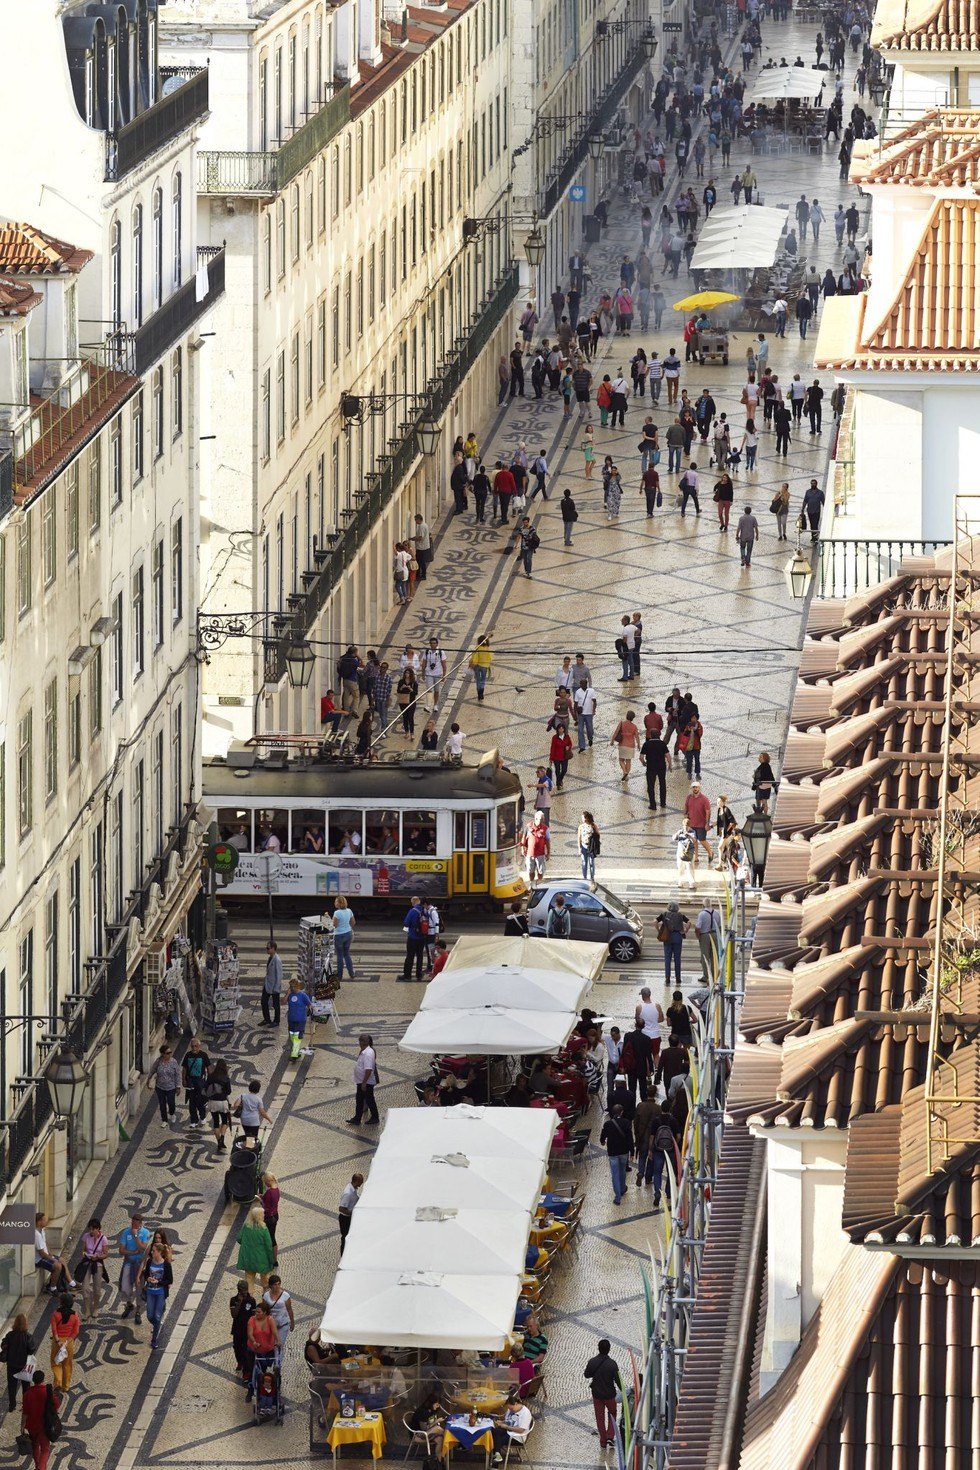 The aerial view of a busy street in Lisbon